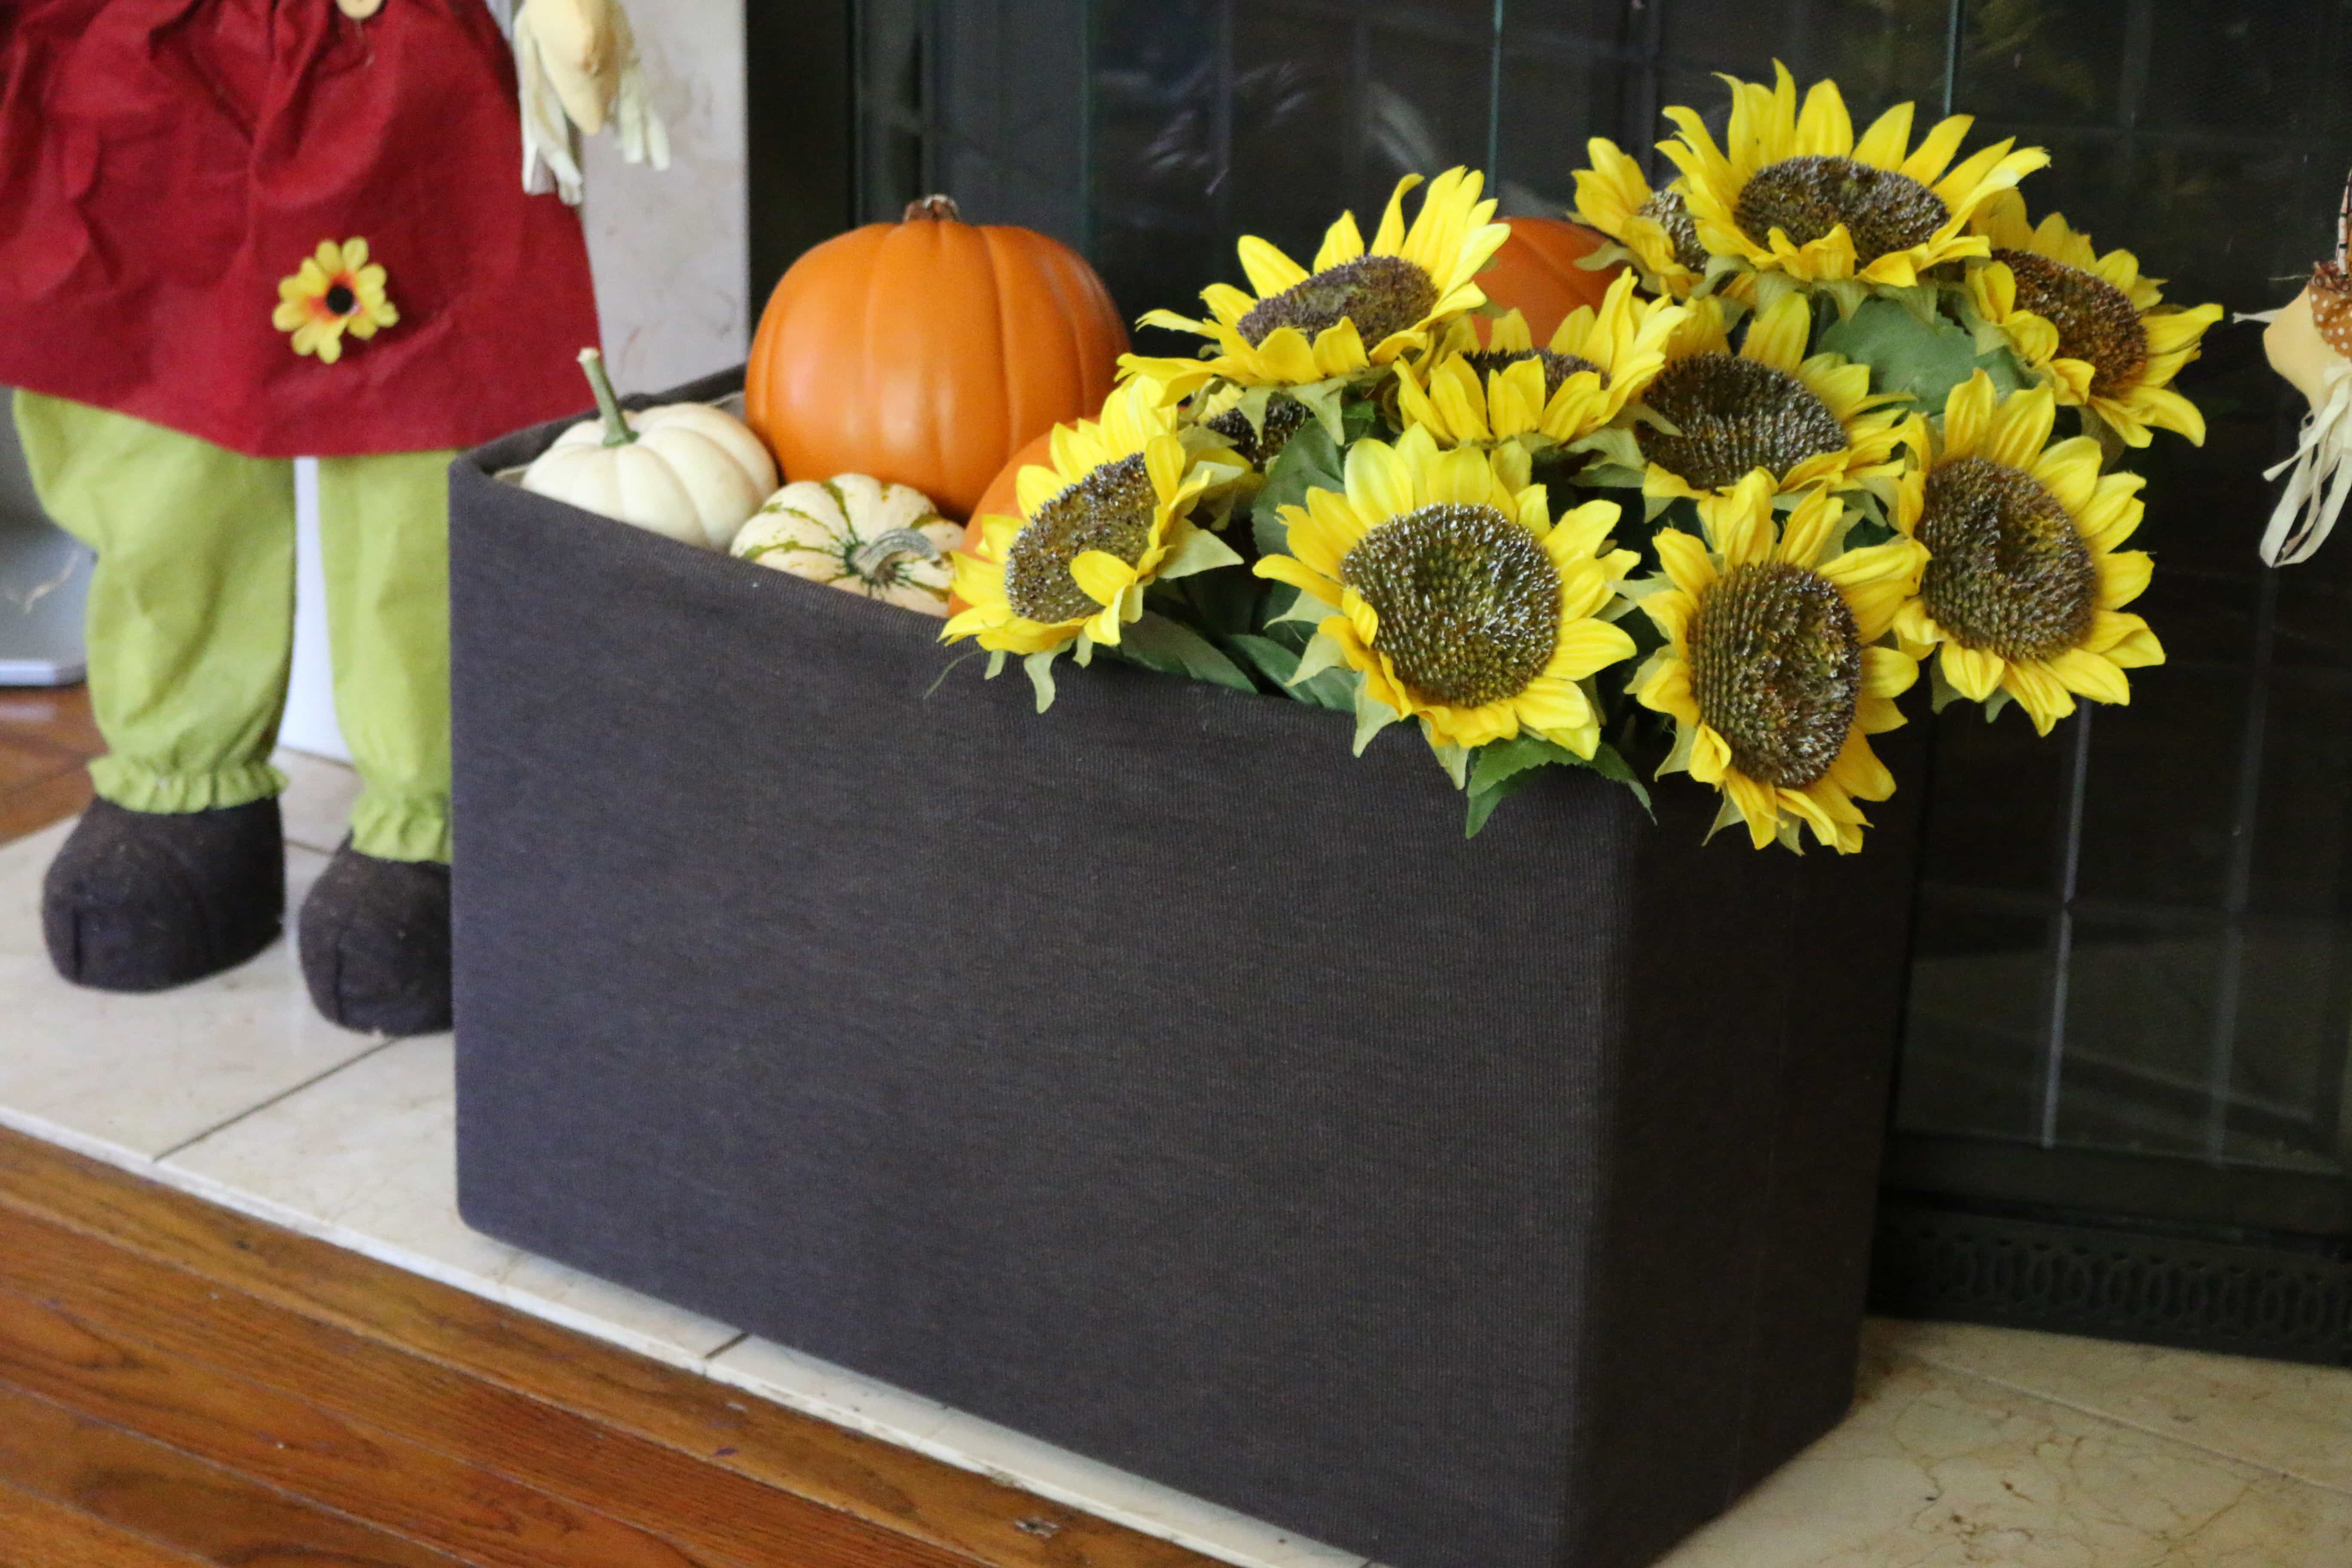 IMG 0011 - Decorative Box for Fall